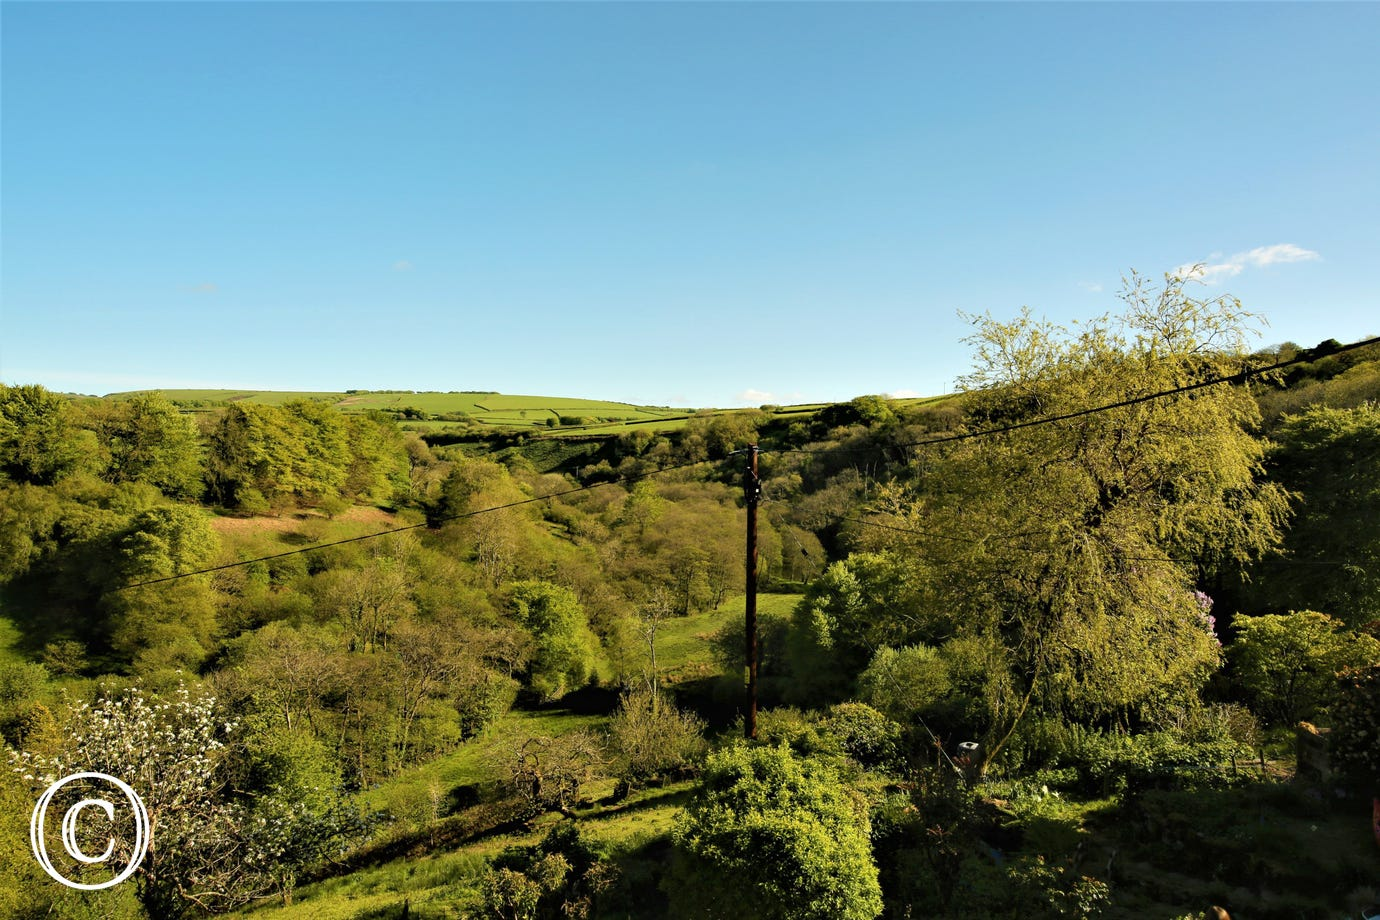 Magnificent views over the river Heddon and valley to the wooded hillsides beyond